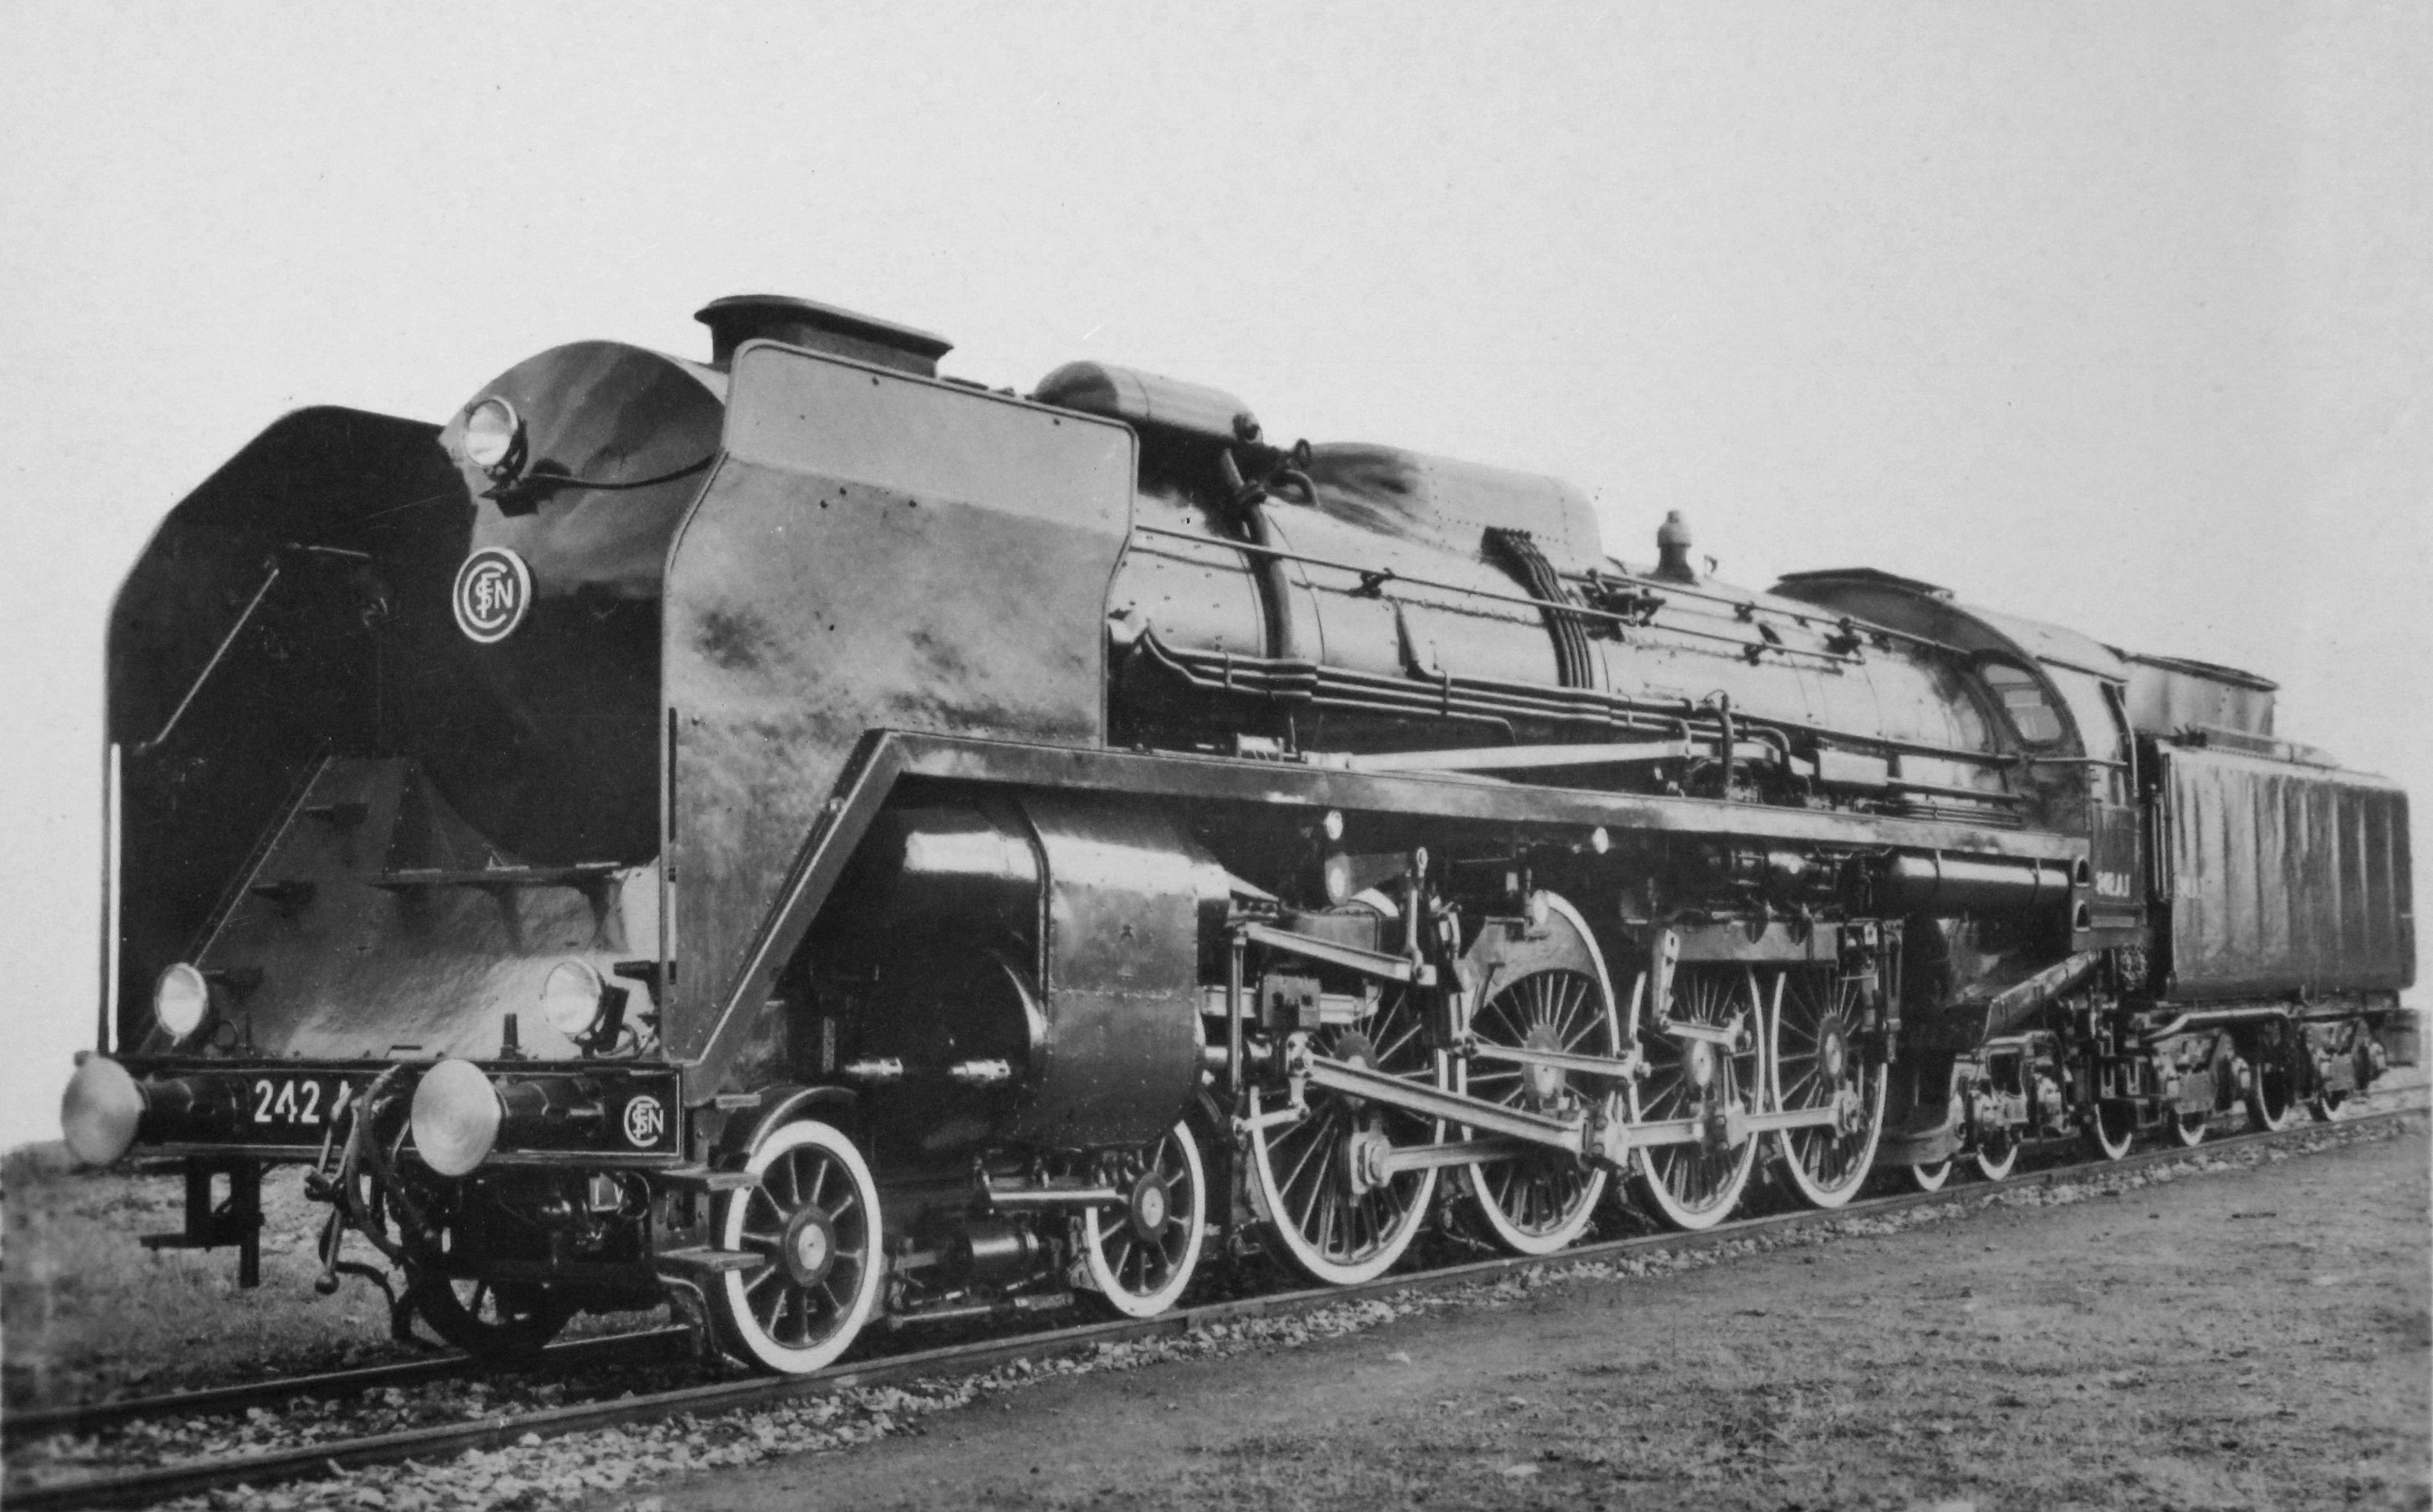 The last André Chapelon designed locomotive to be constructed was the 242A1. It incorporated all his ideas and is the most advanced steam locomotive ever constructed. (PIcture courtesy Wikimedia).